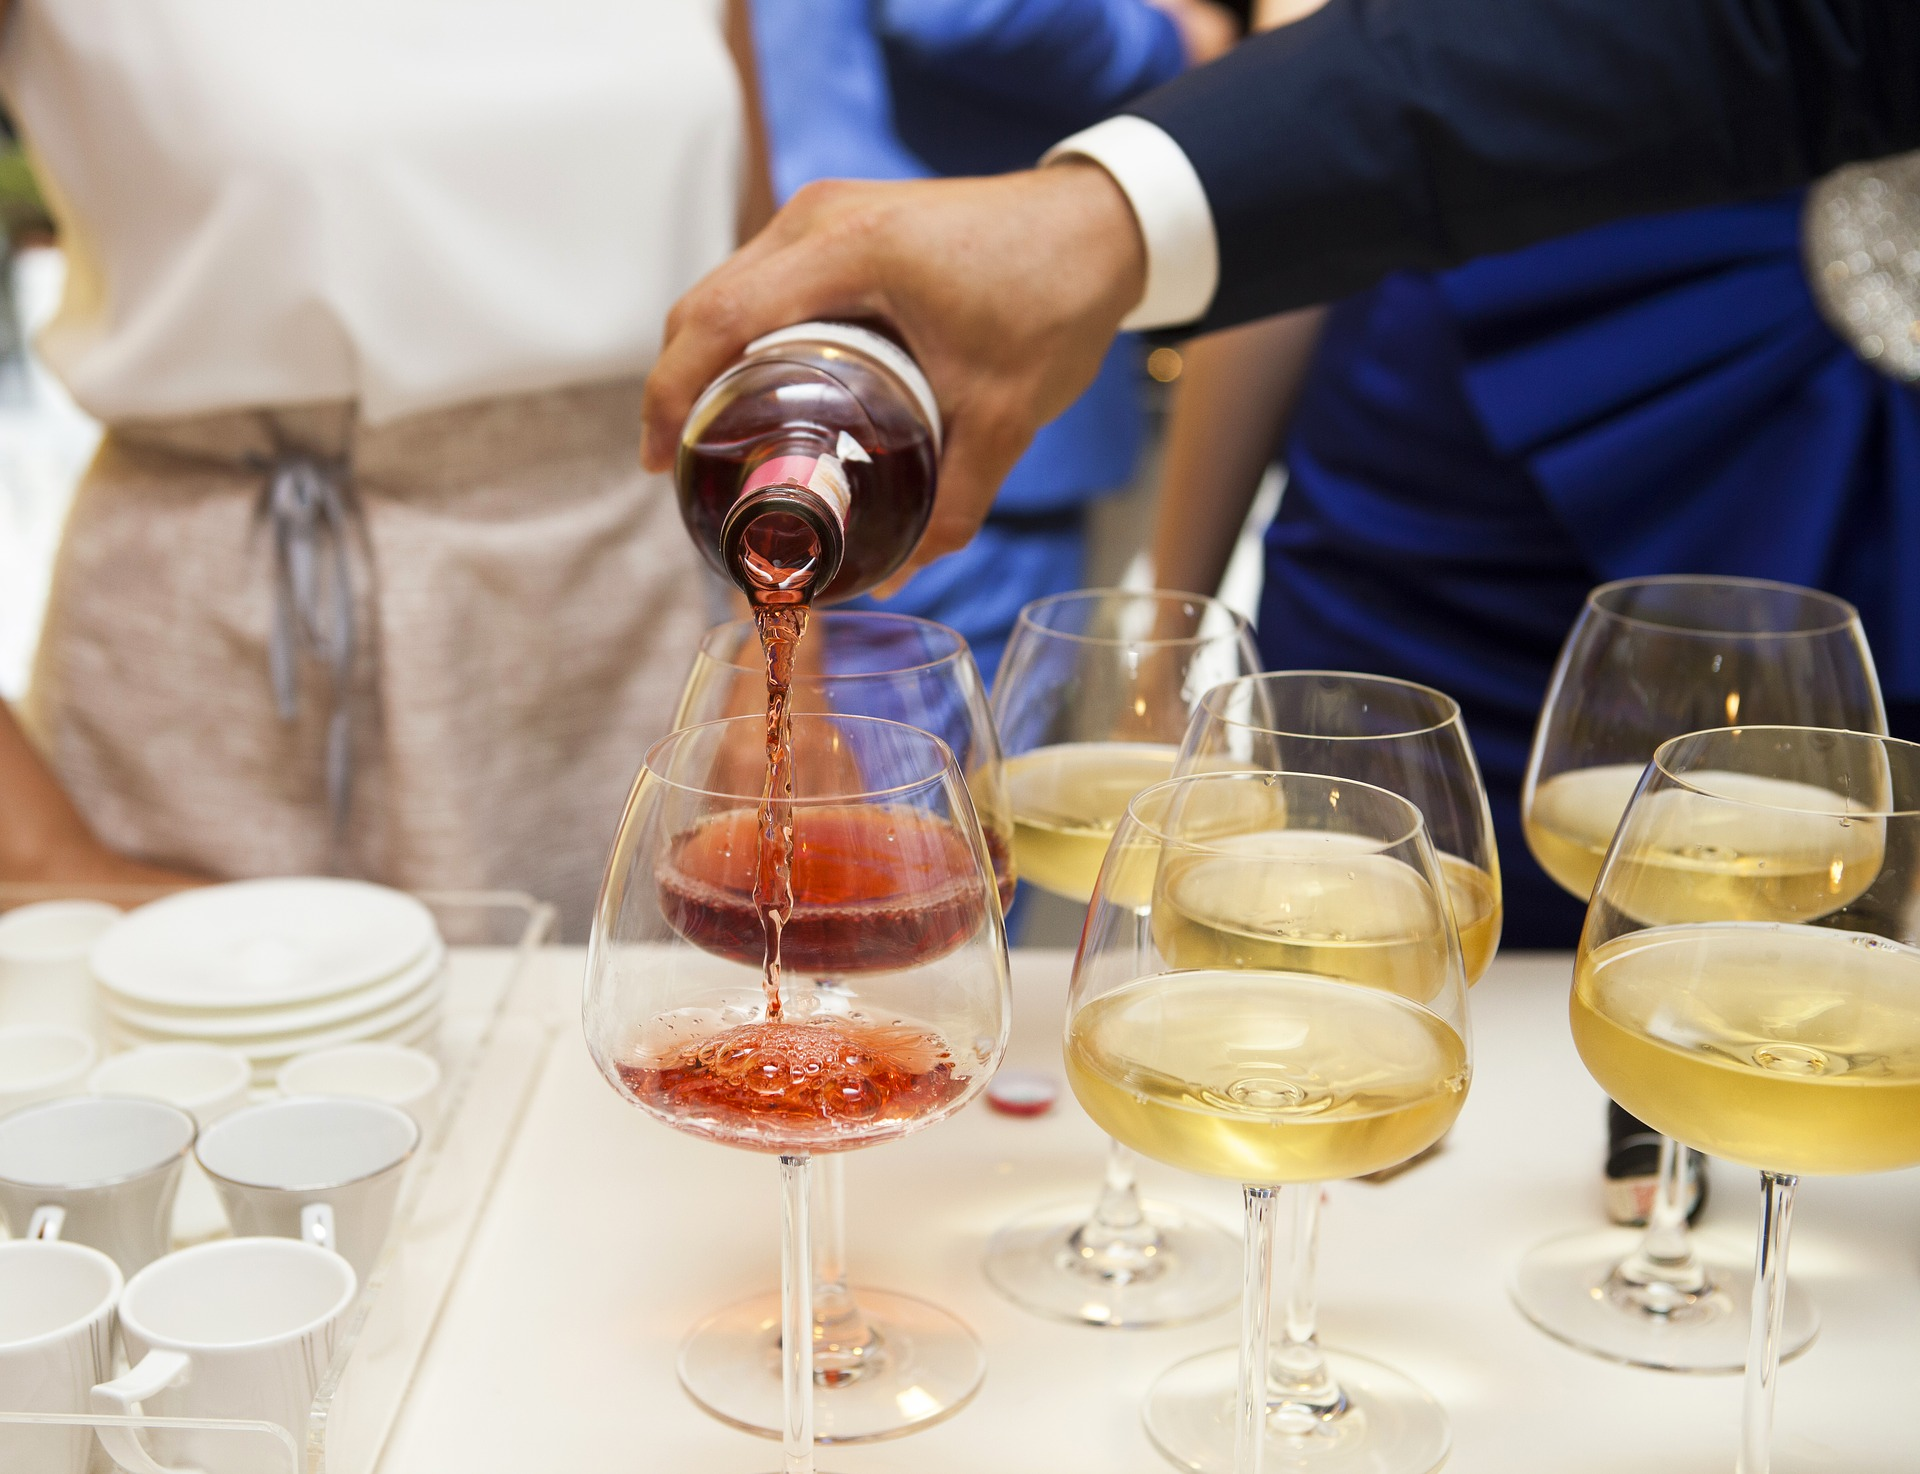 Why a wine tasting event should be on your list of activities